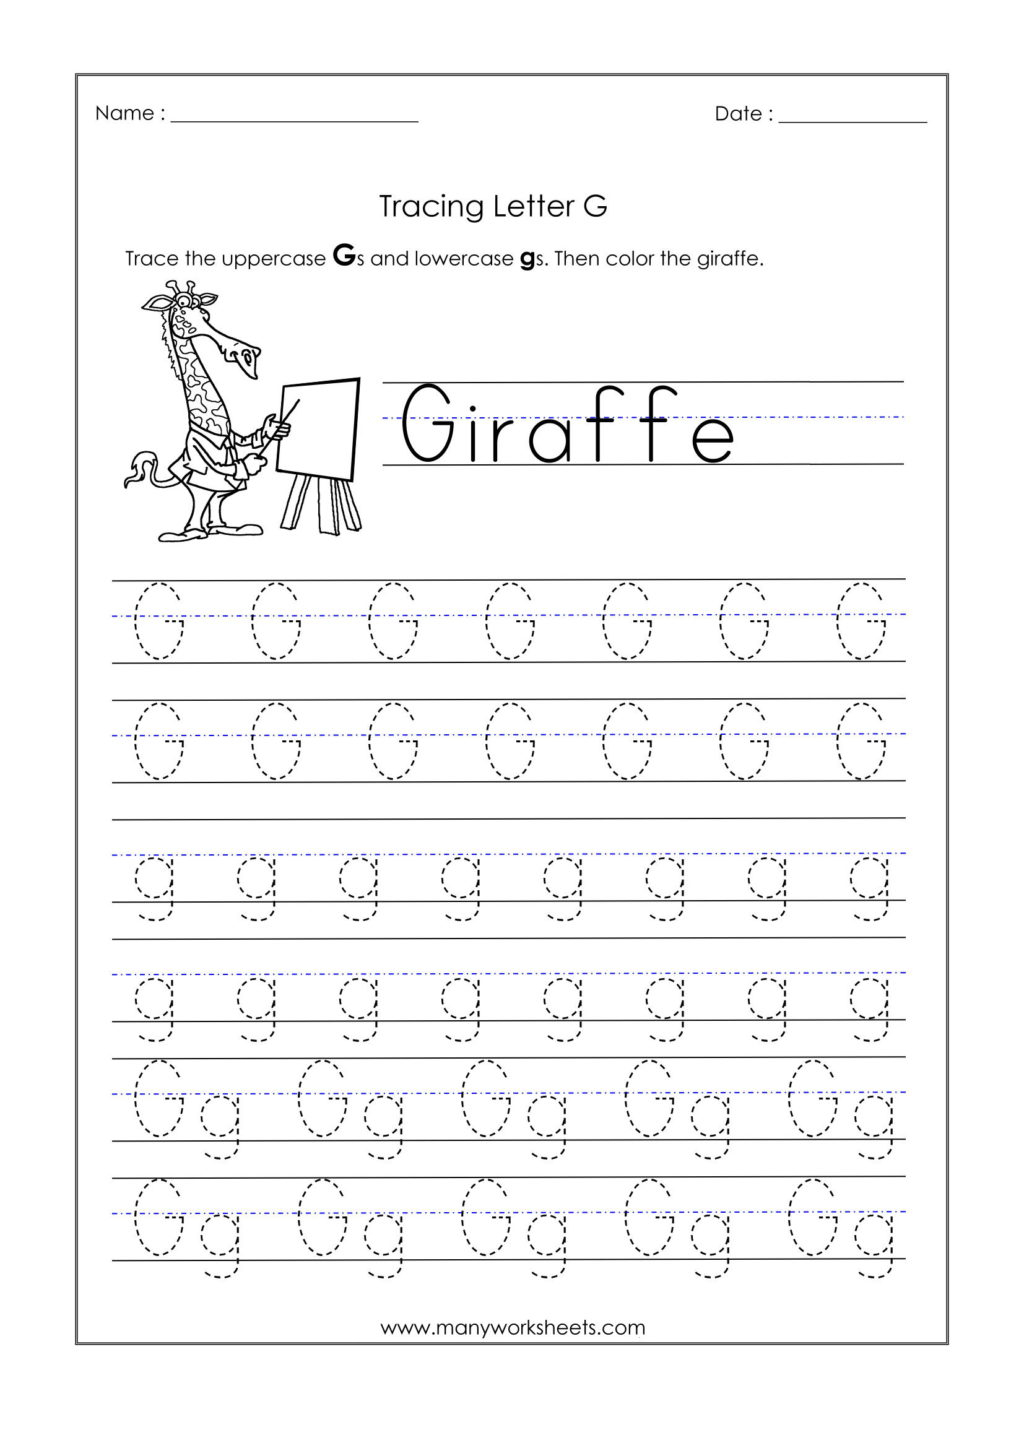 Math Worksheet ~ Letter Tracing Worksheets Free Printable with regard to Letter I Tracing Worksheets Preschool